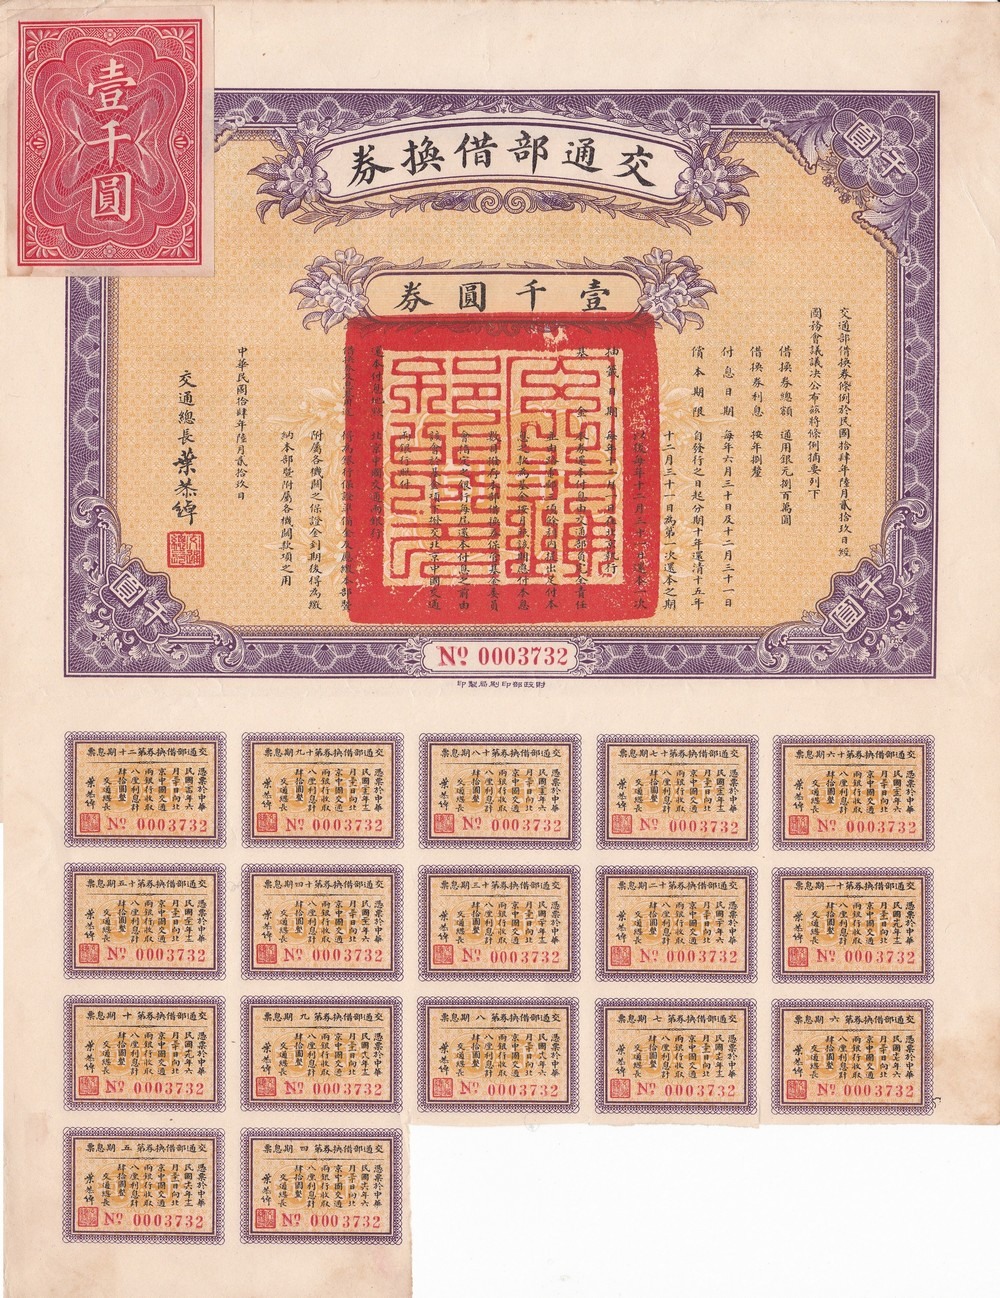 B2220, 8% Bond of Ministry of Communication, China 1000 Dollars, 1925